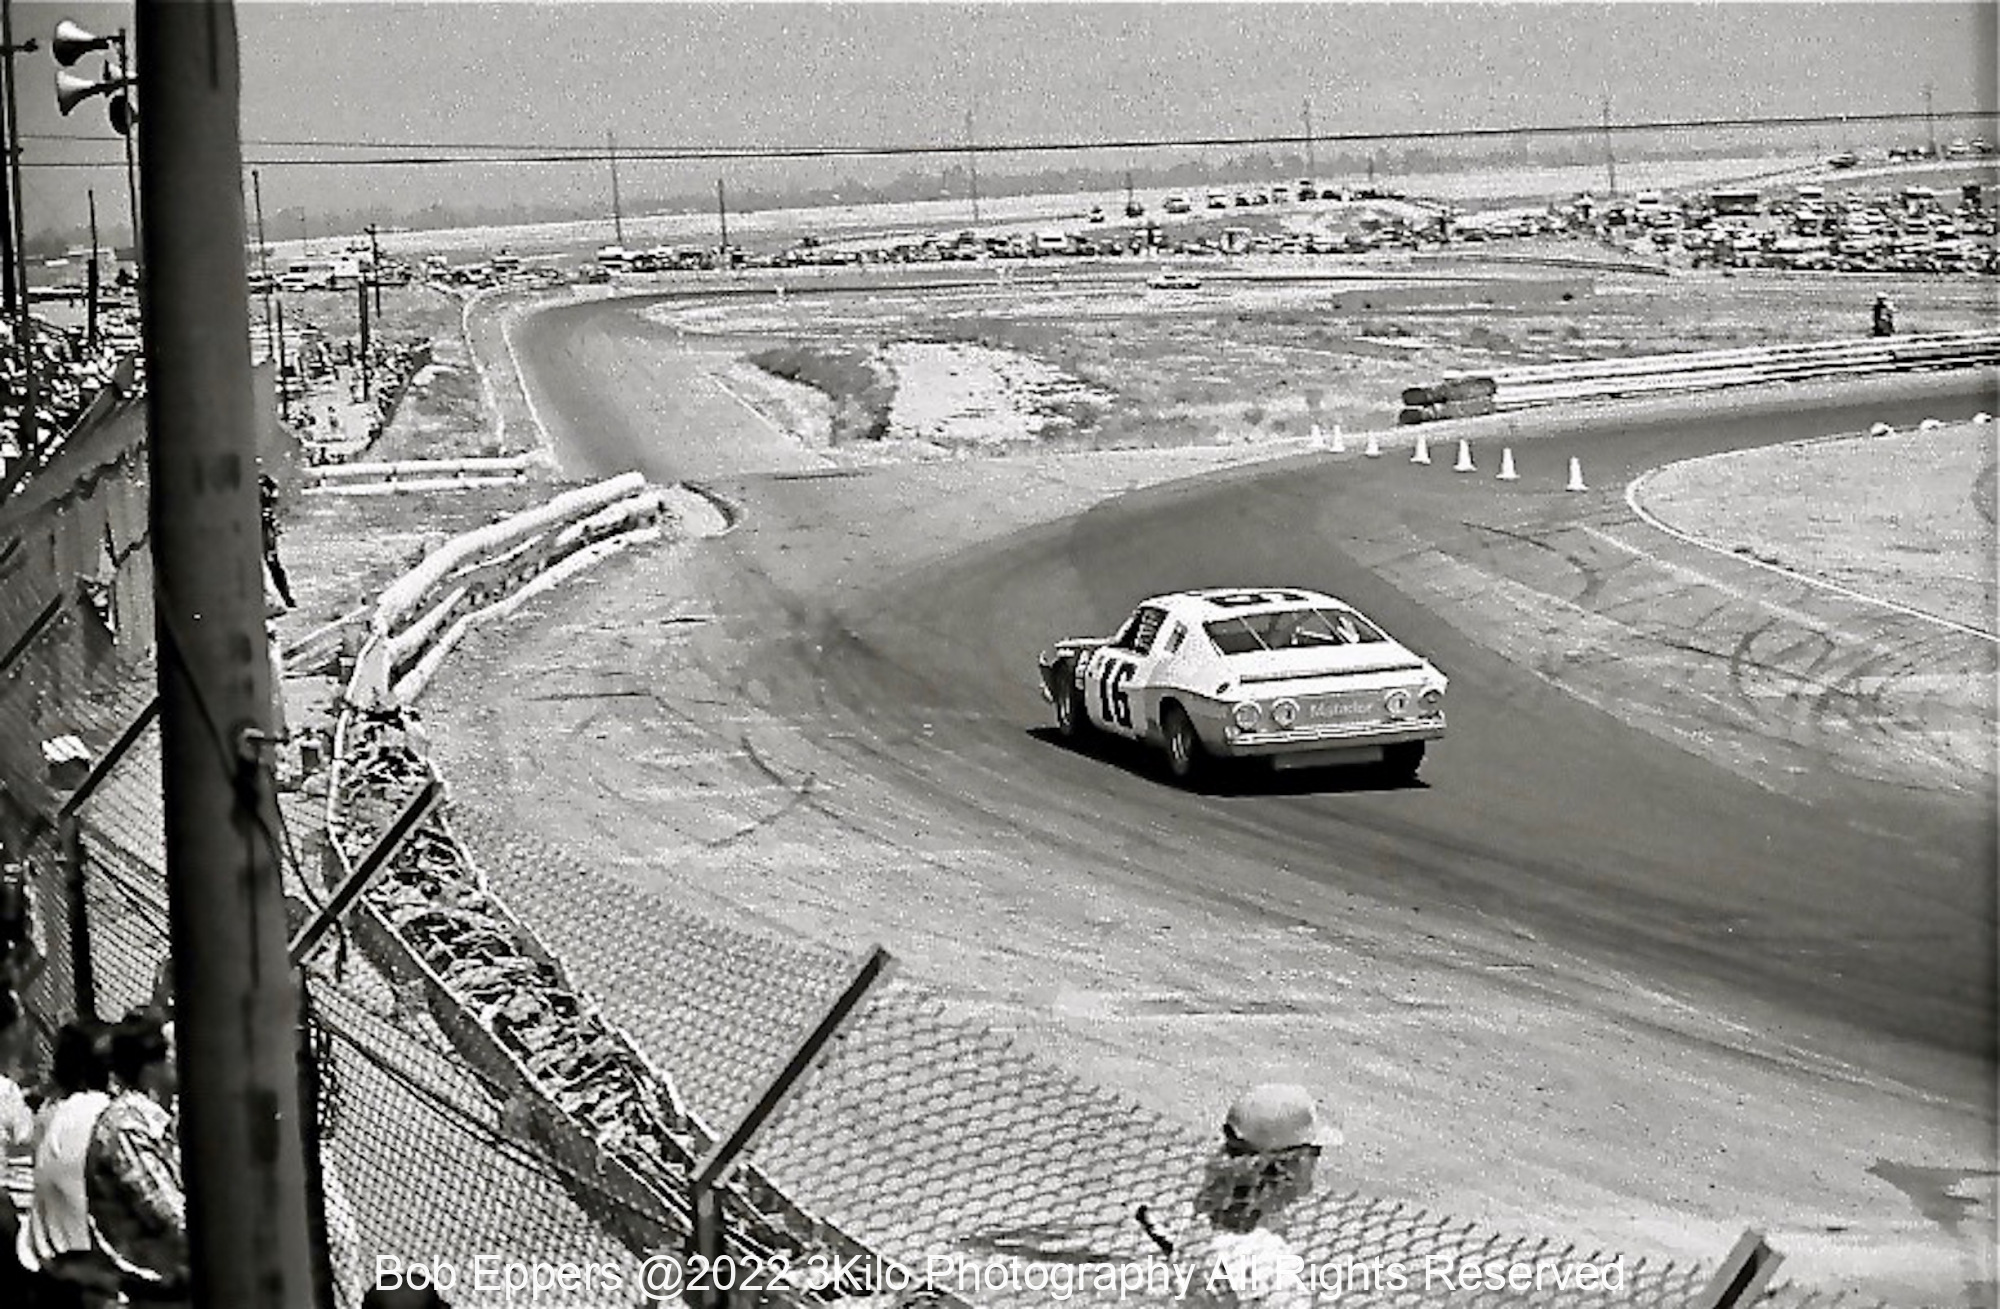 Photo of Bobby Allison exiting Turn 6 at a NASCAR Race at Riverside.